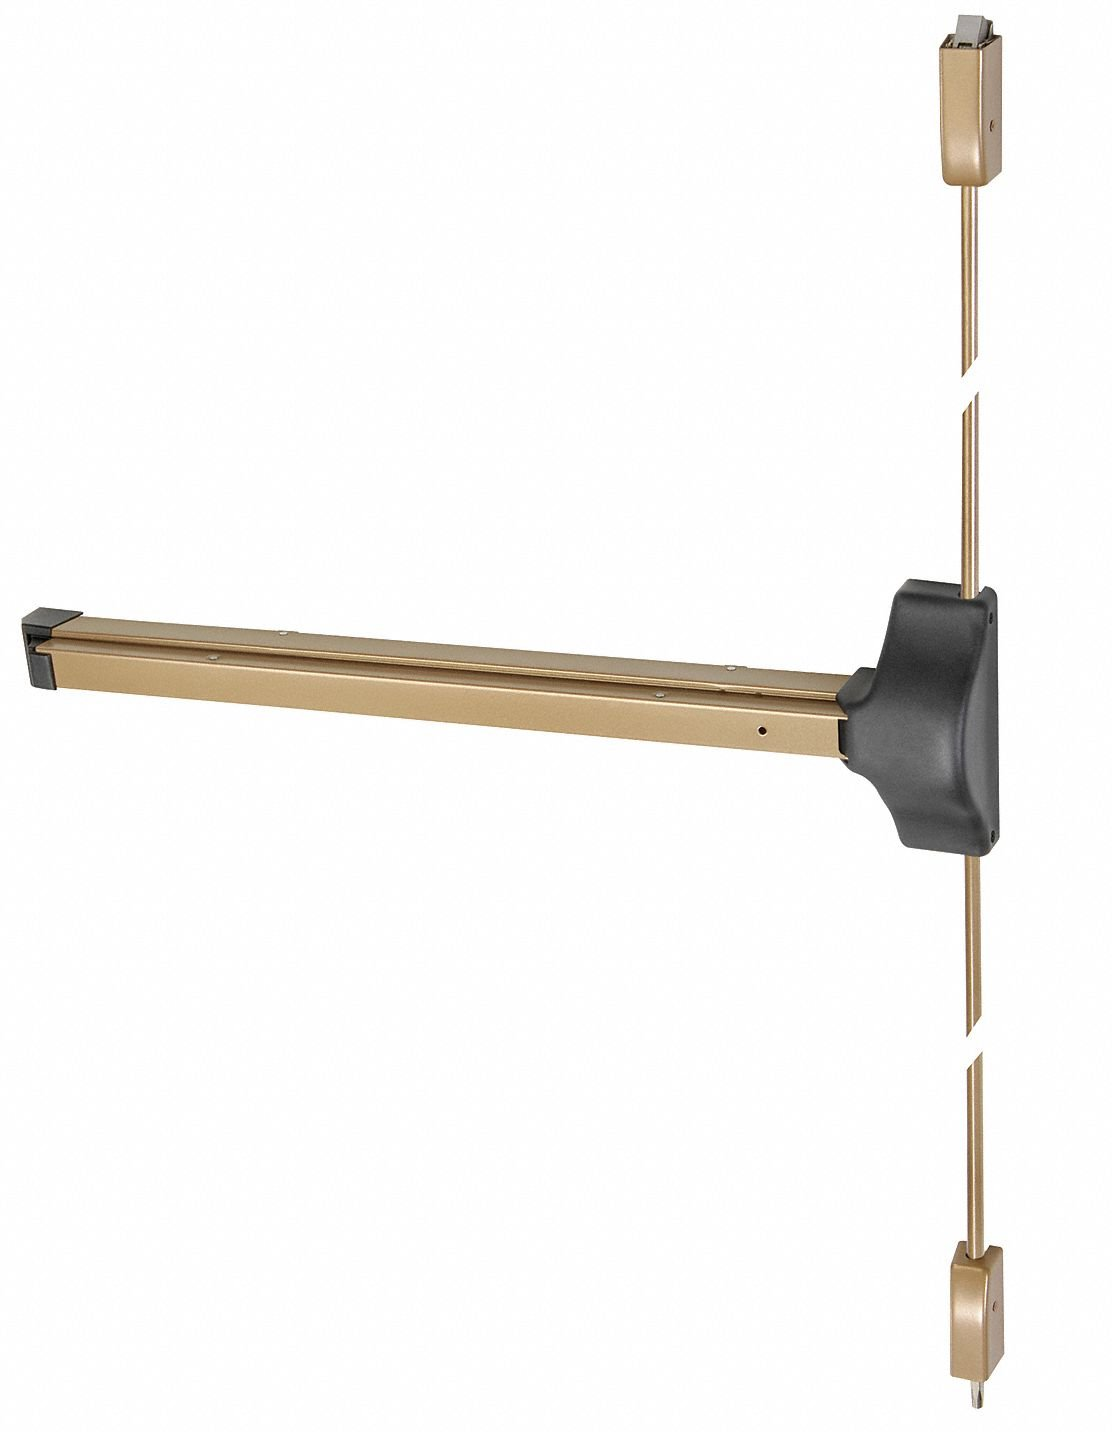 Exit Device, Series 1800, Bronze, Surface Vertical Rod